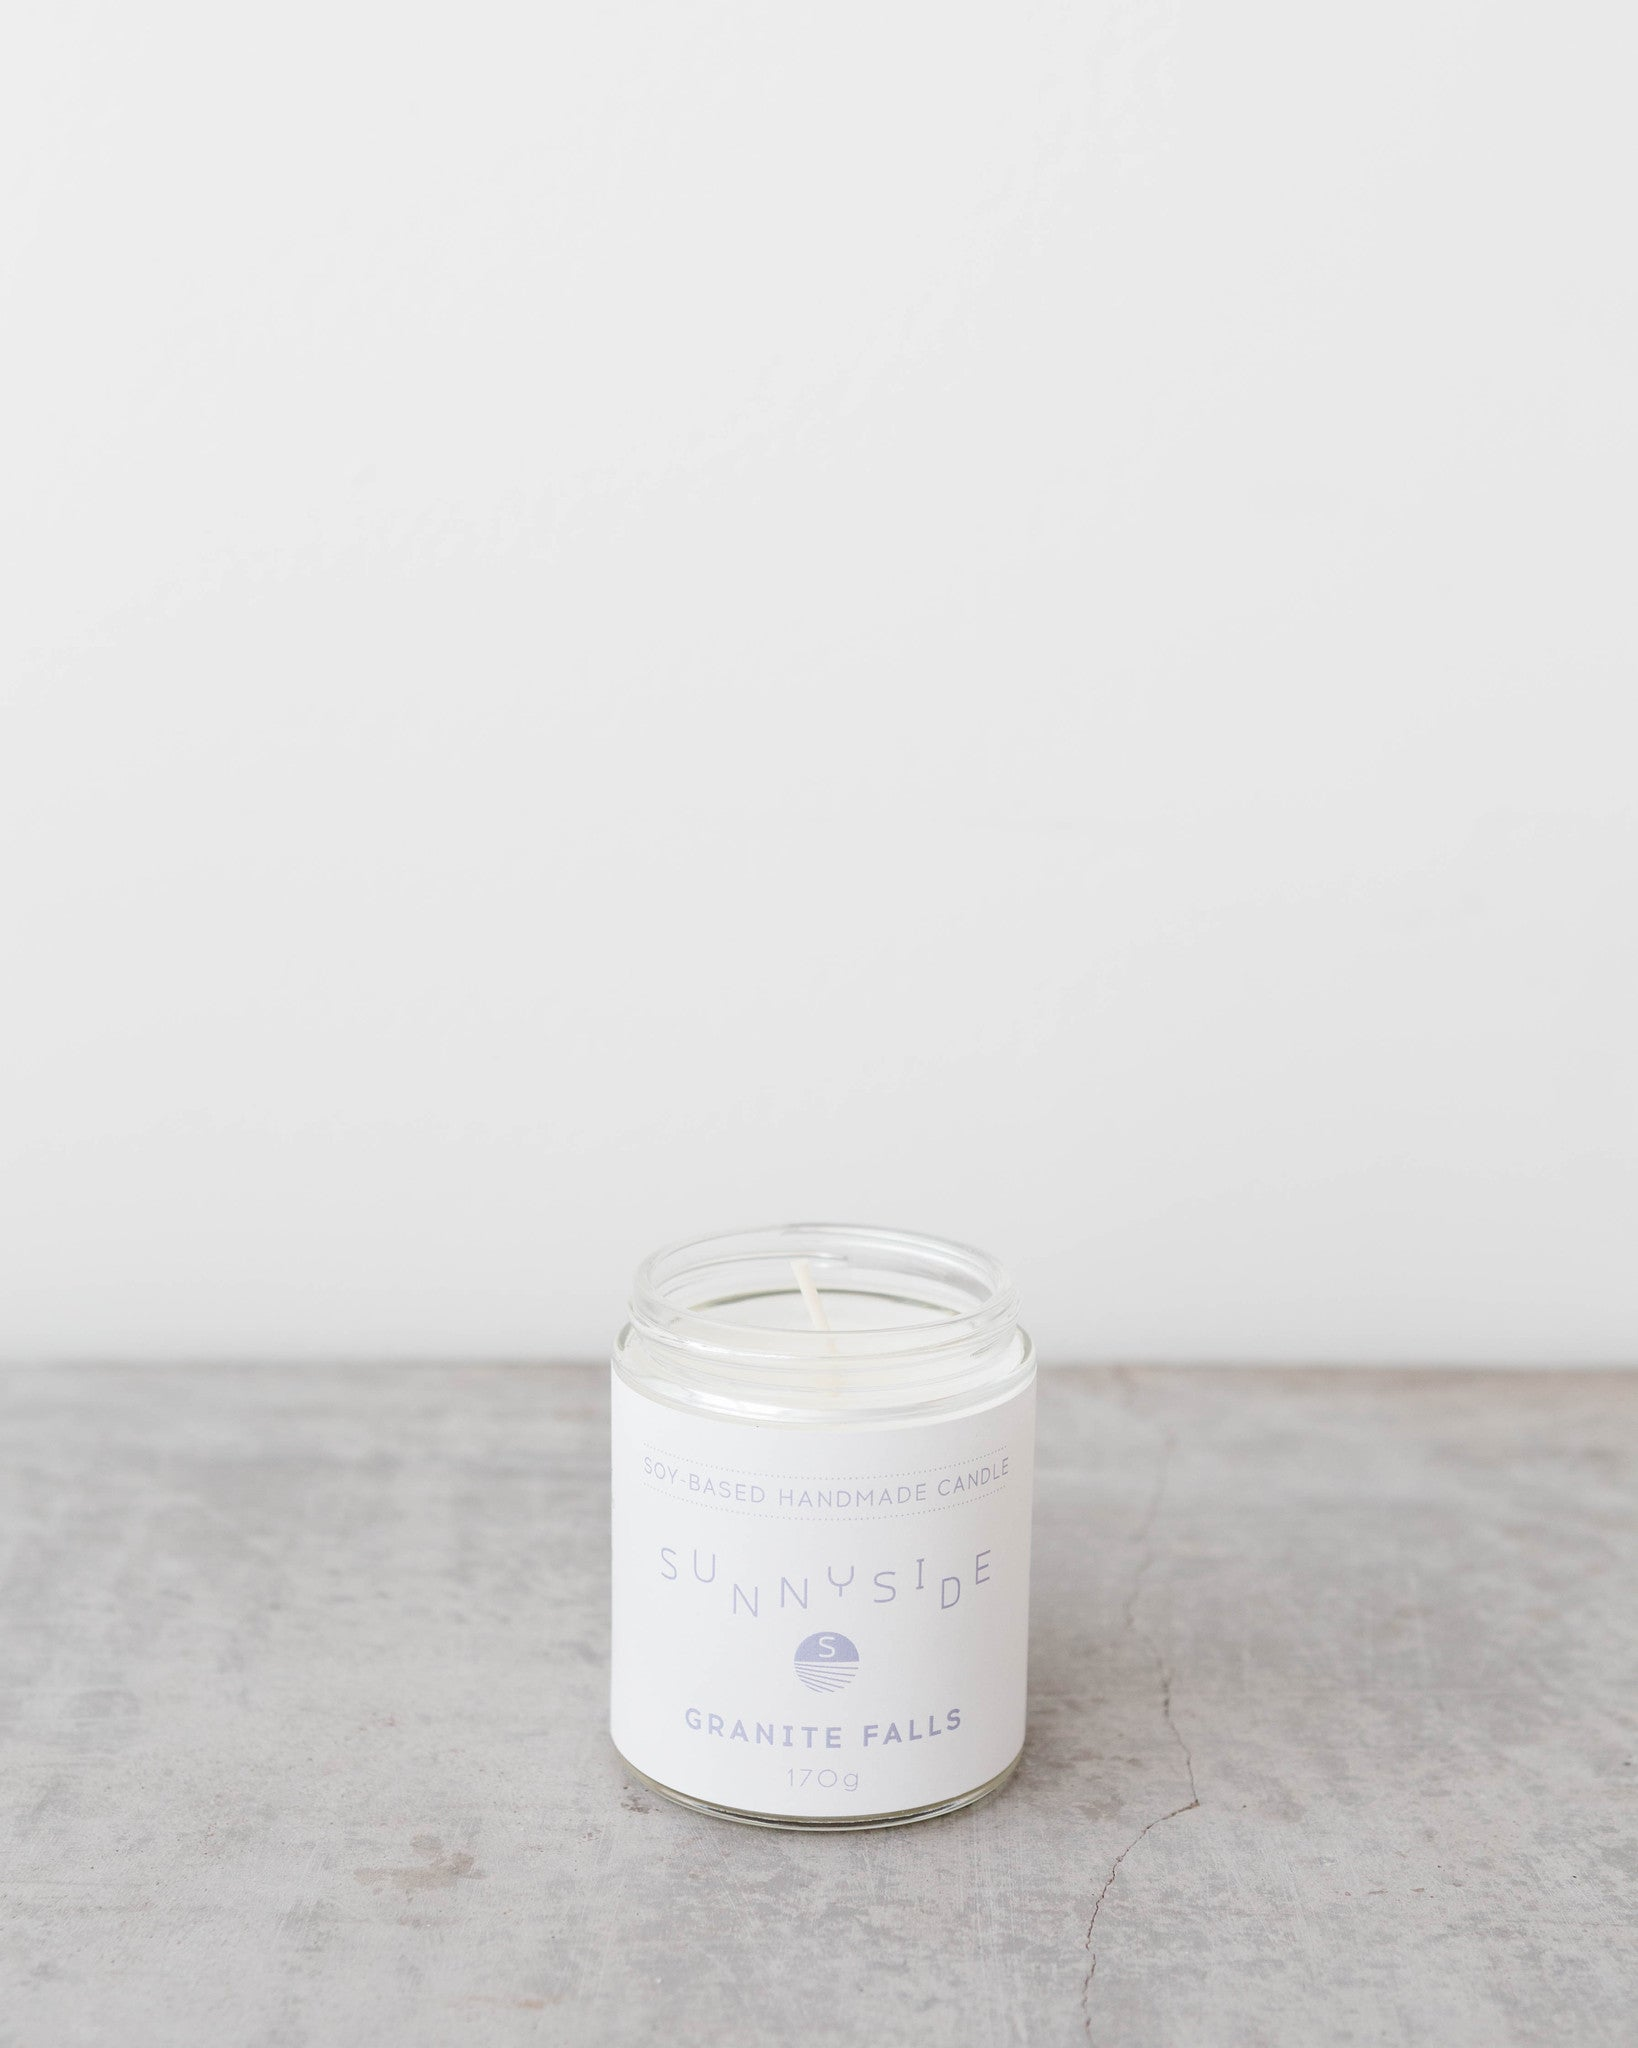 granite falls soy candle by sunnyside deep cove vancouver